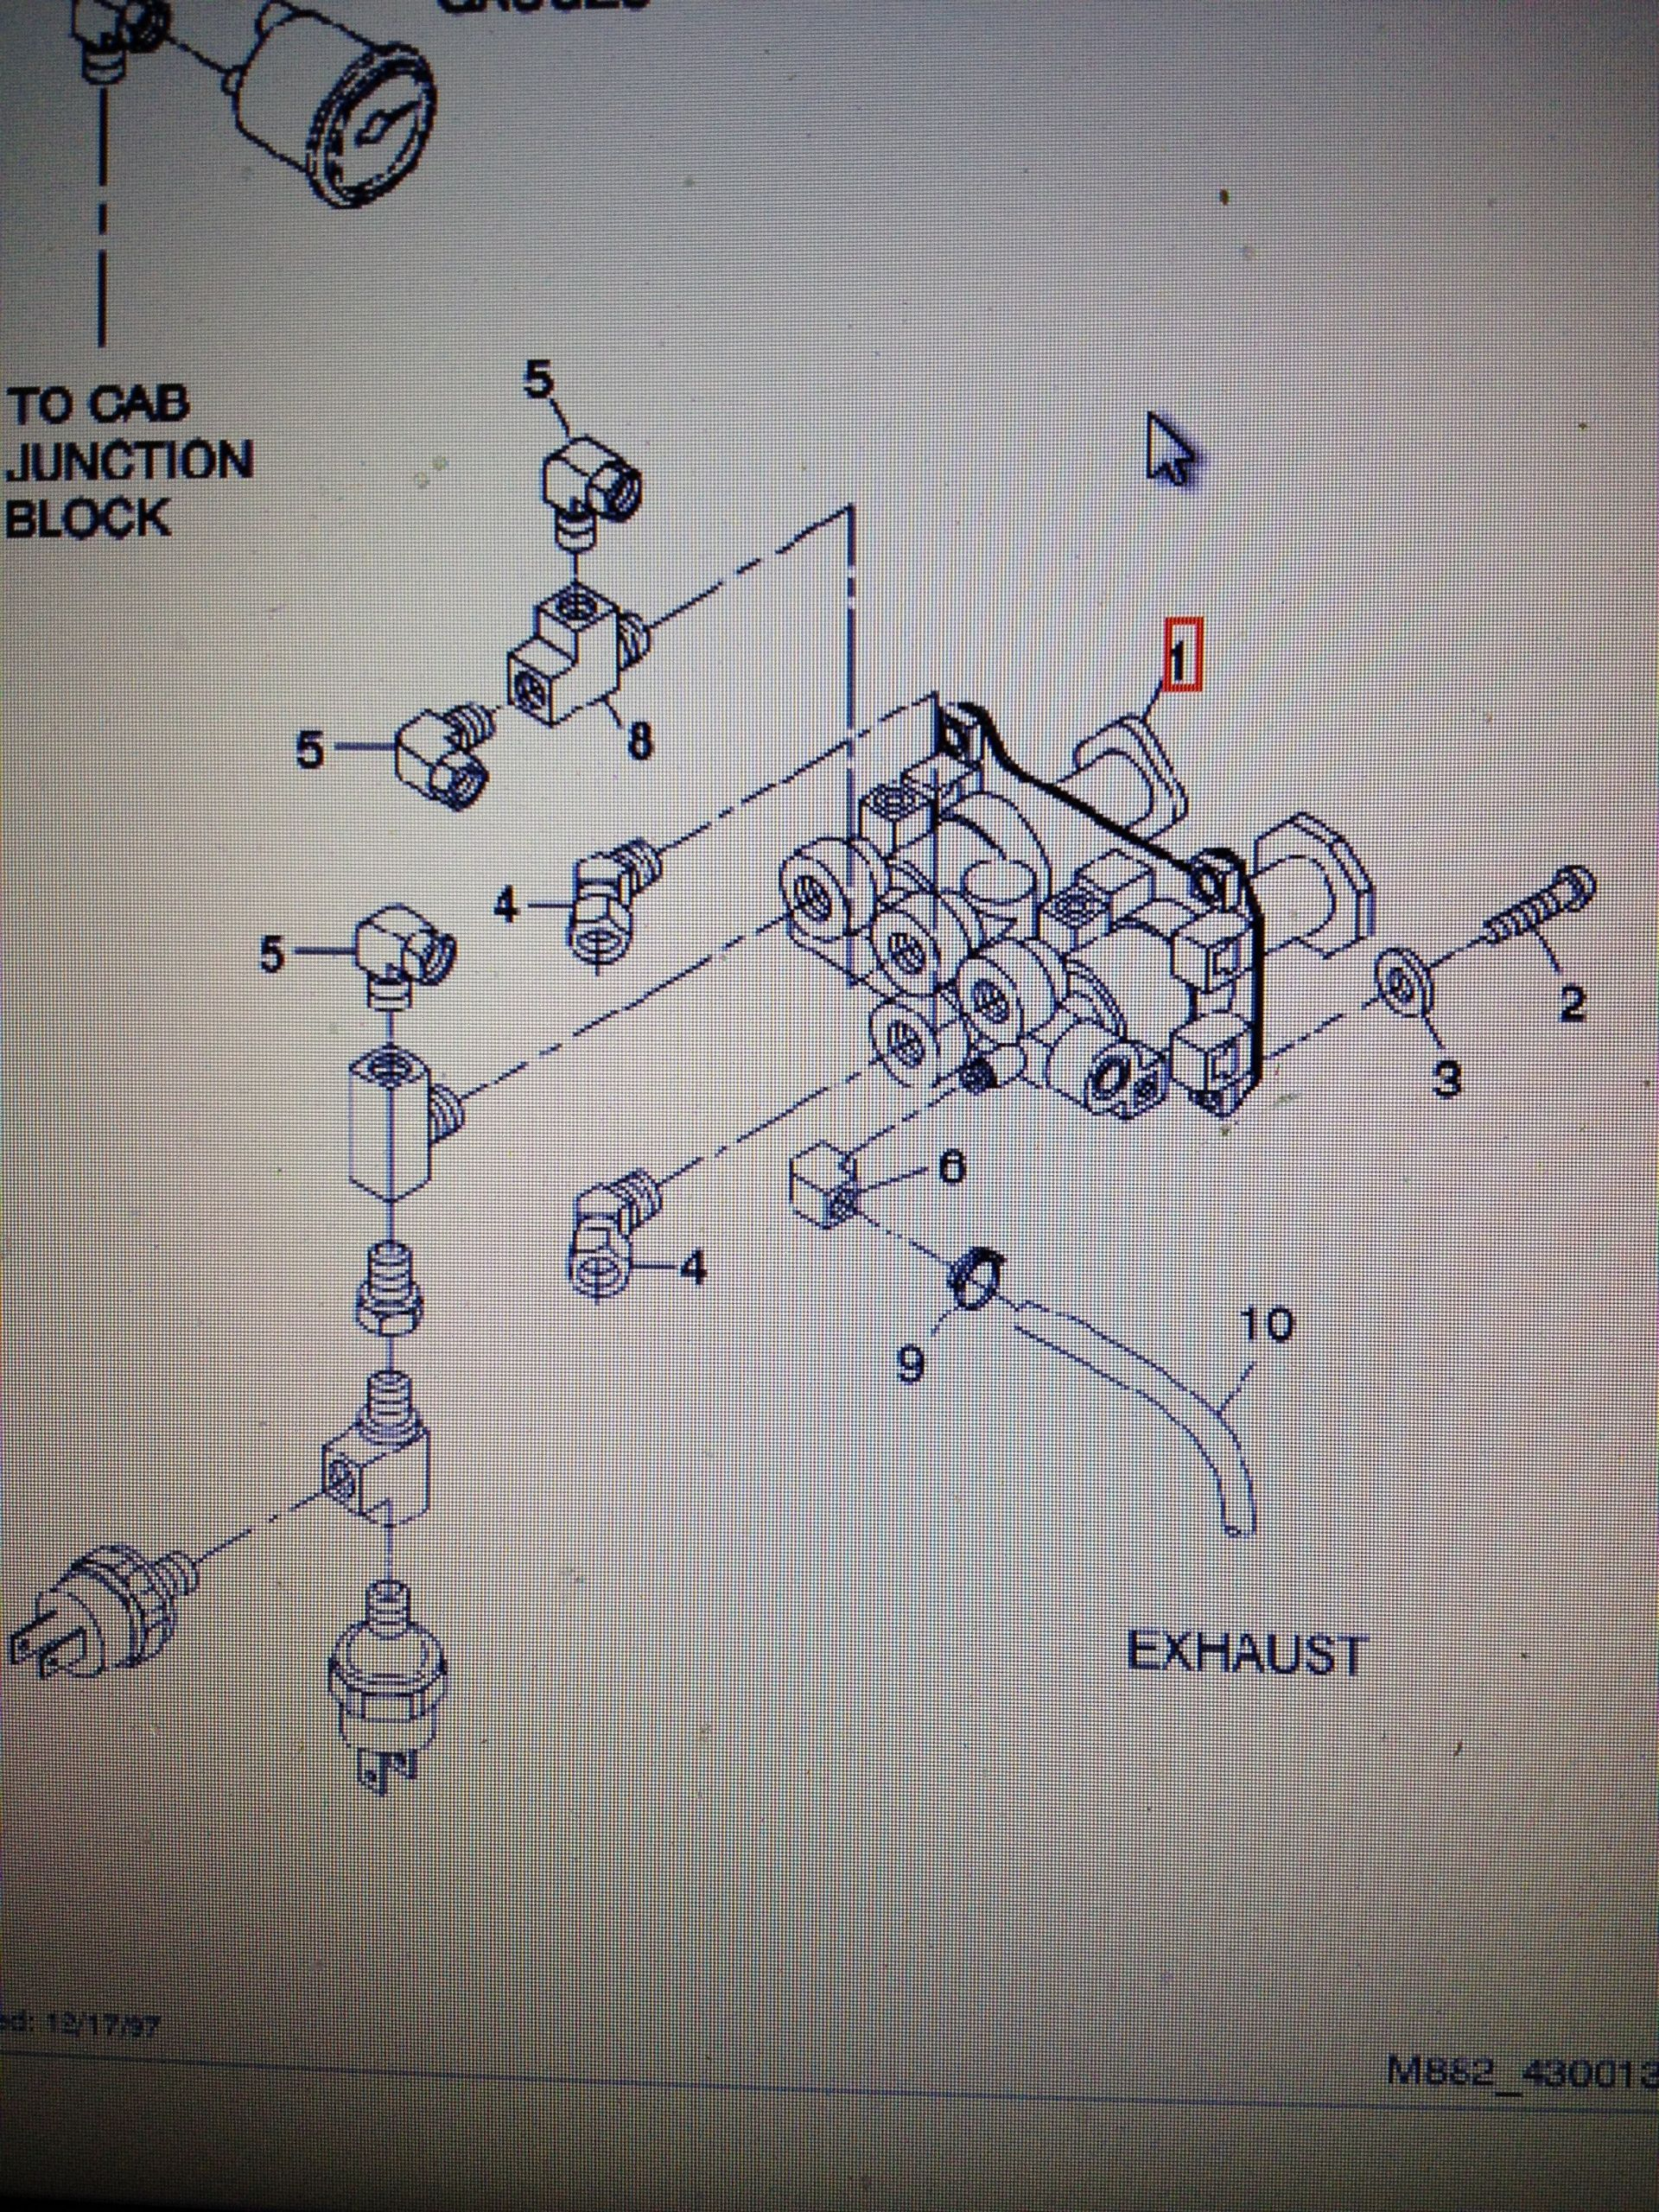 Air Line Diagram 2000 Freightliner Truck I Have A 2000 Freightliner Fld120 Classic Xl I Just Replaced the Dash Safety Control Valve S Of Air Line Diagram 2000 Freightliner Truck